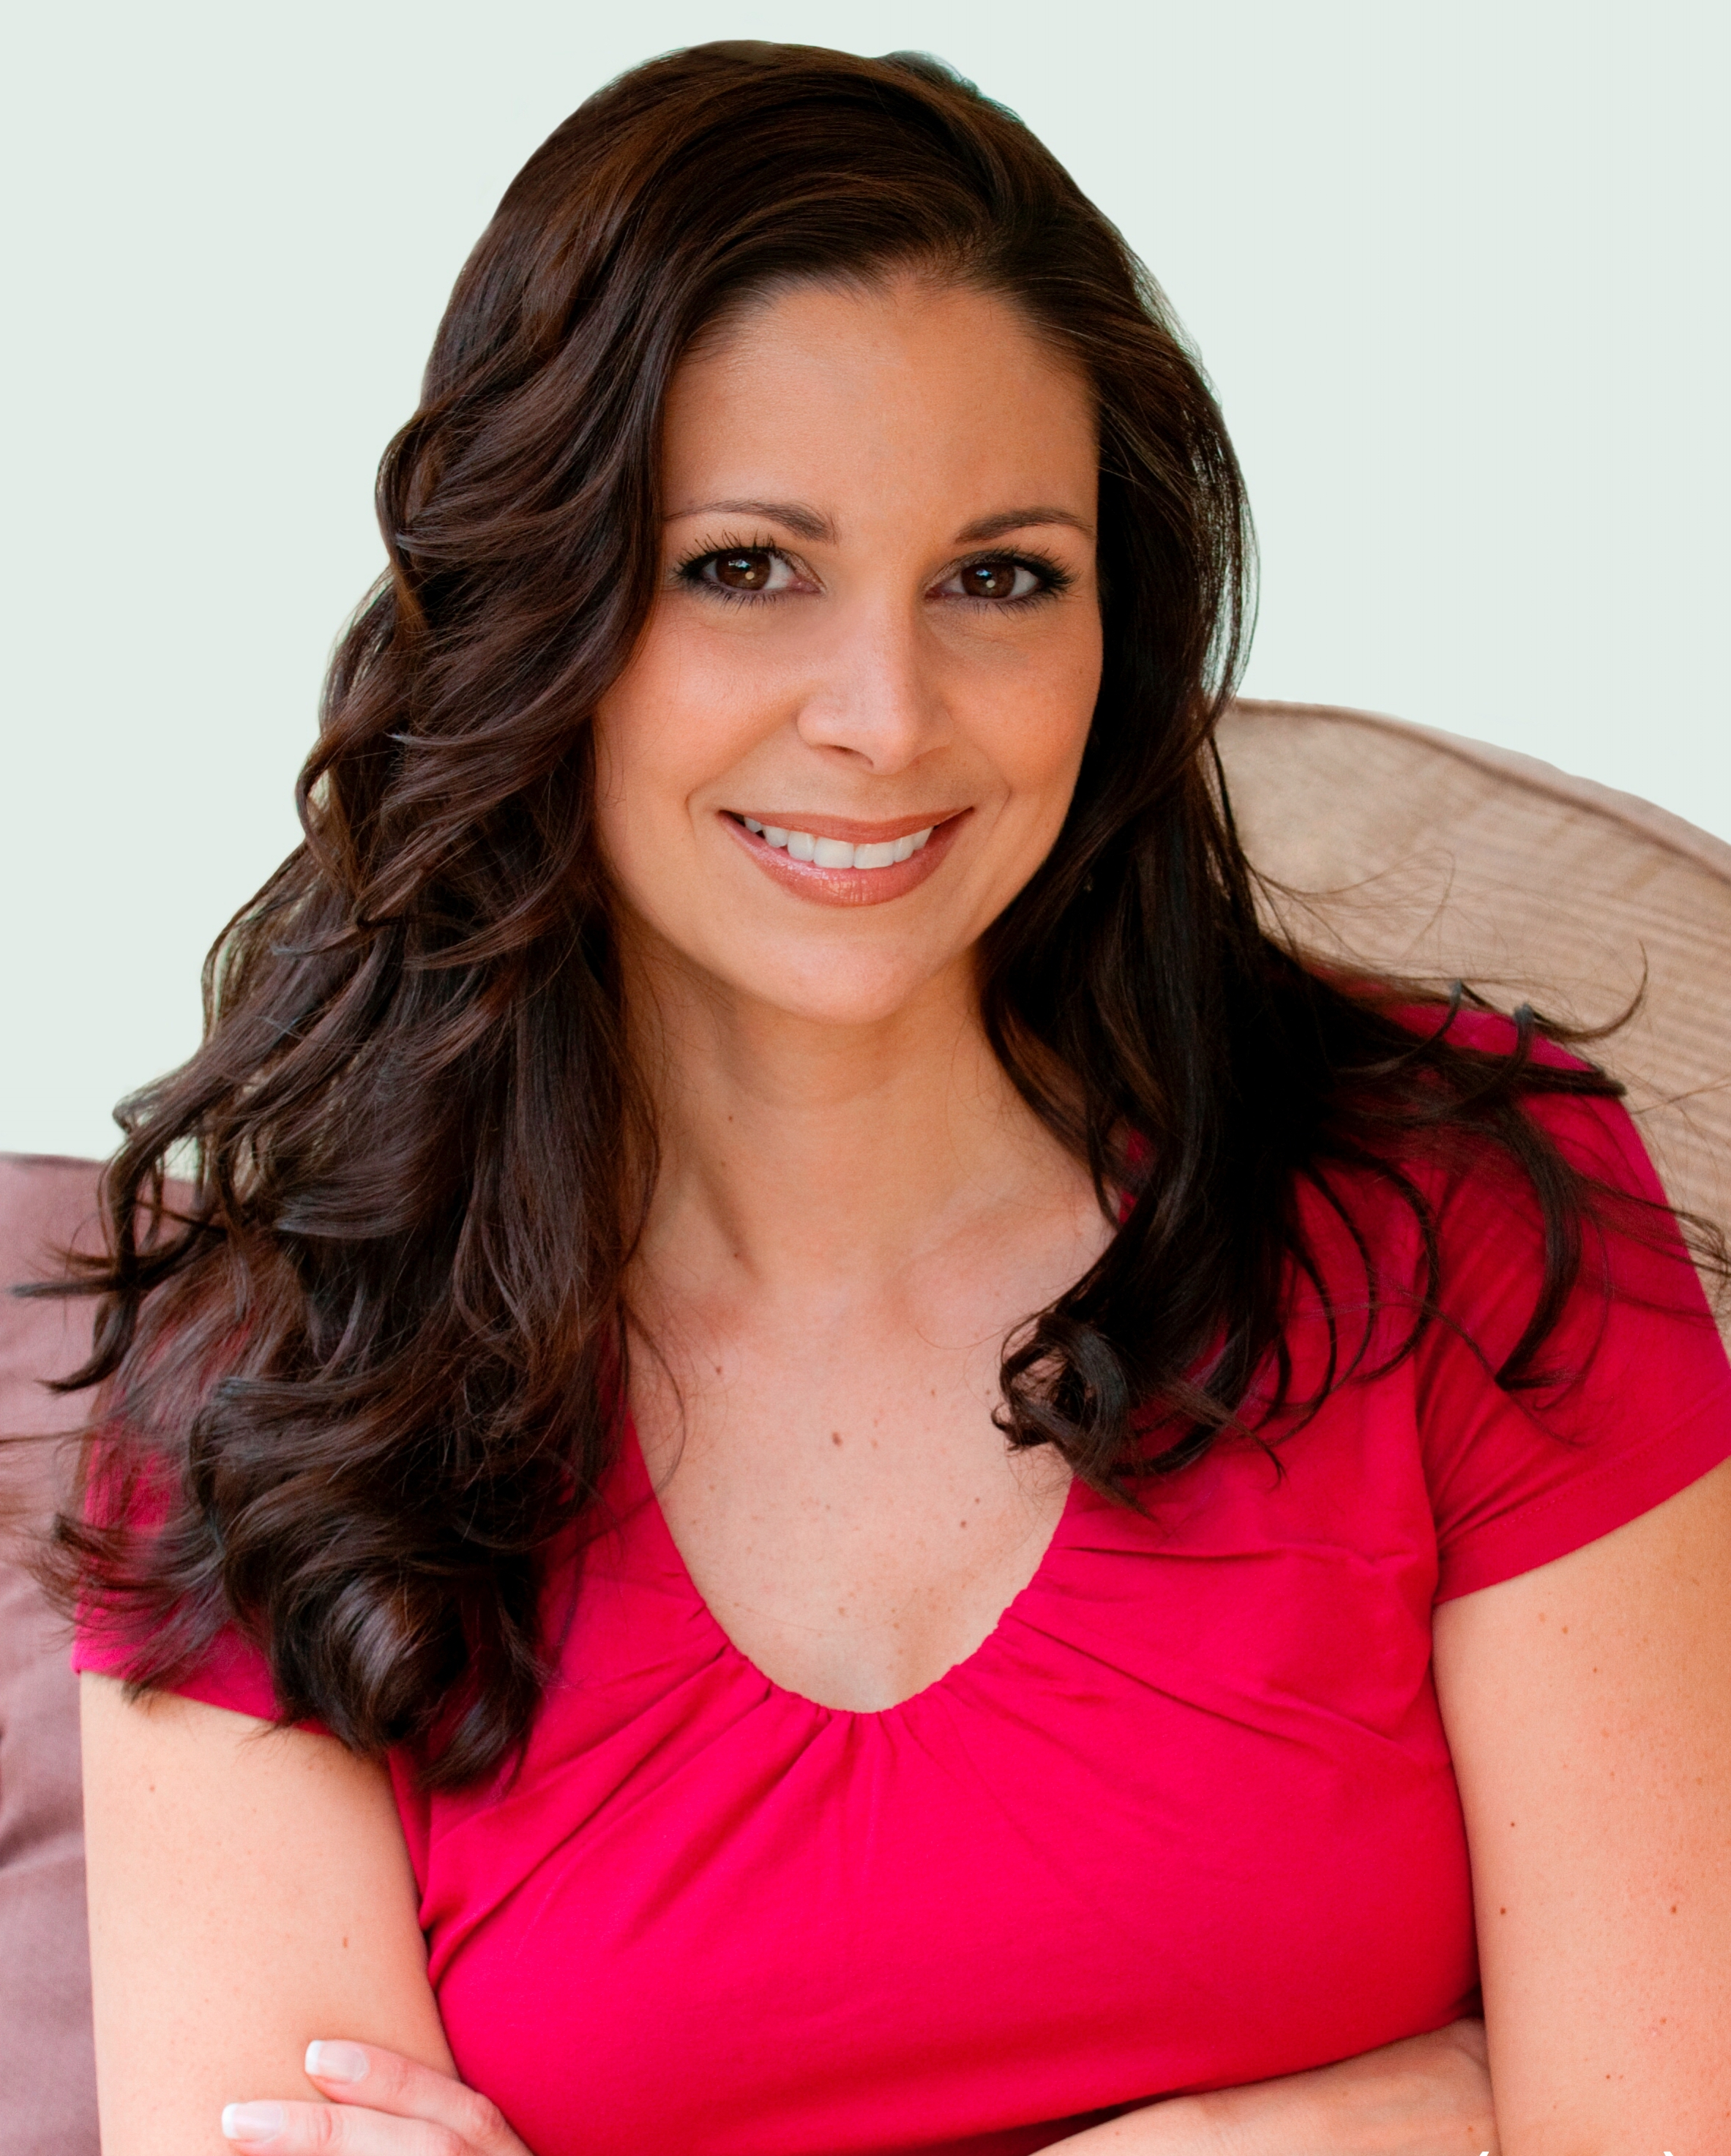 Katy Sudano of Total Health Solutions, BrainCore™ Specialist and Health Coach